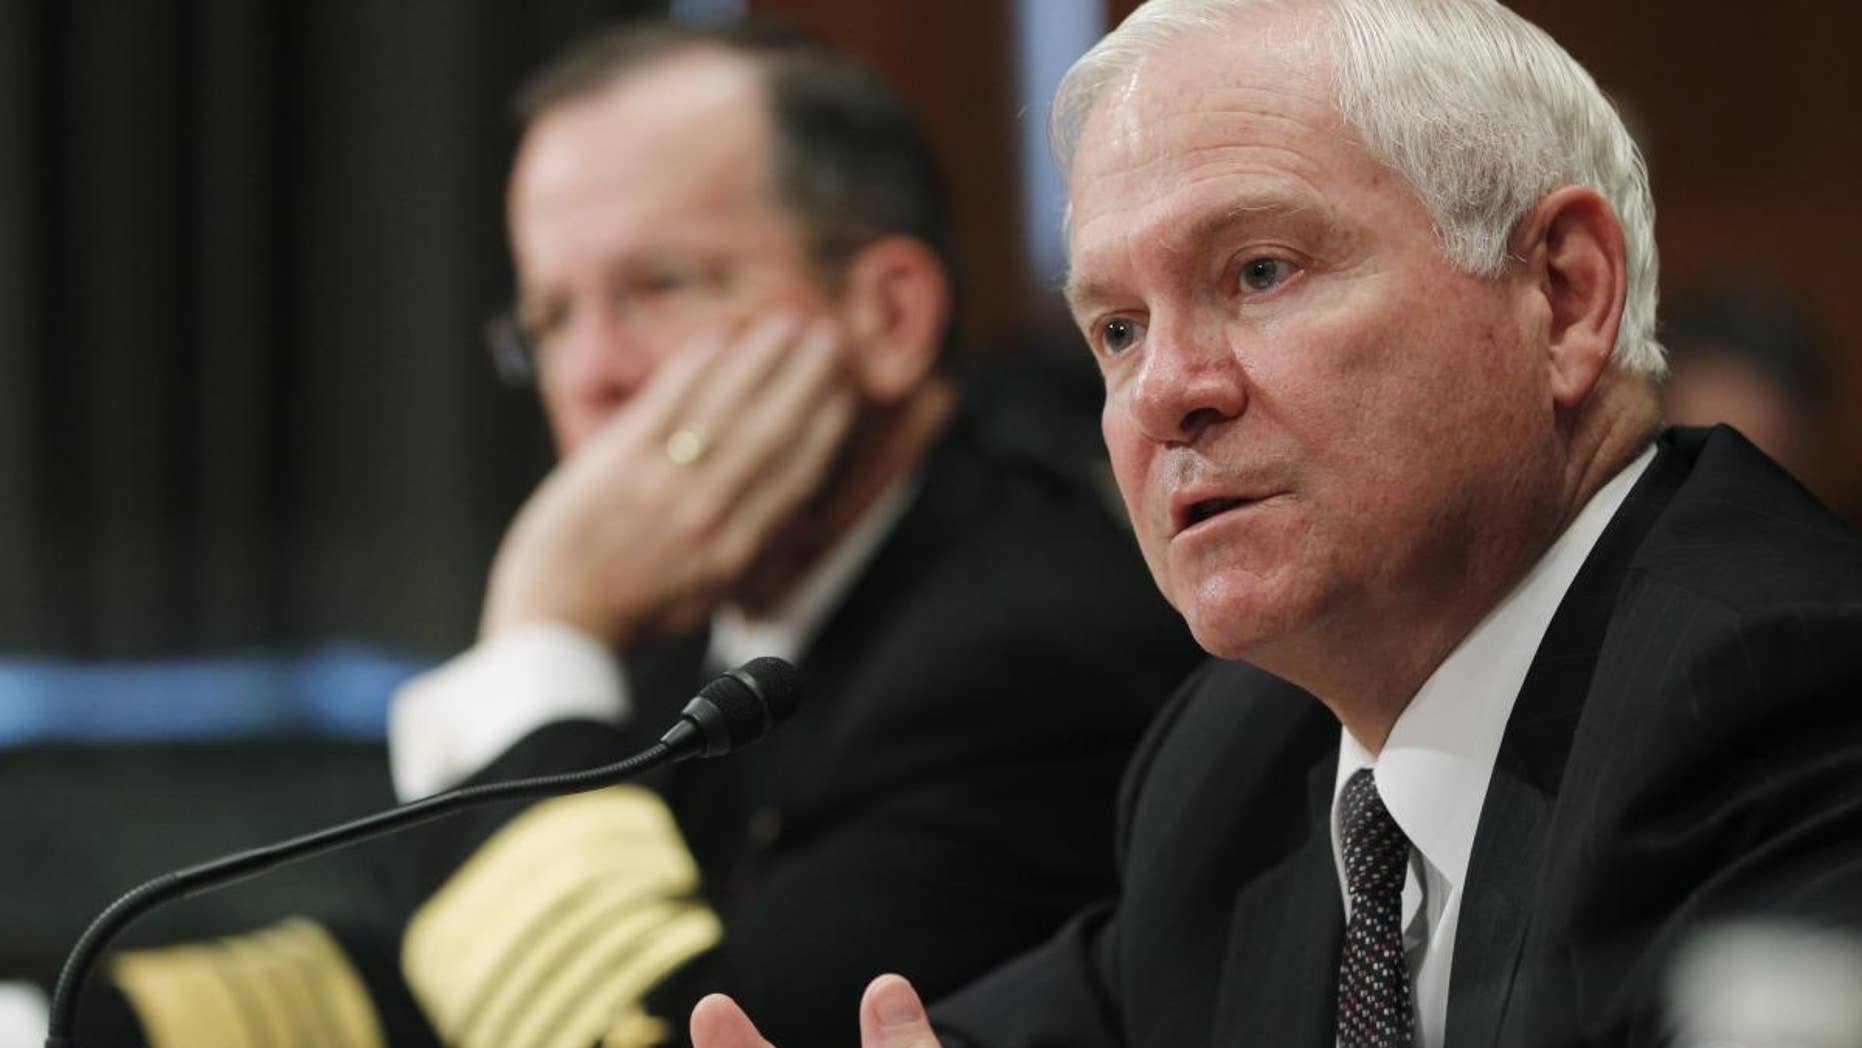 Secretary of Defense Robert Gates and Chairman of the Joint Chiefs of Staff Adm. Michael Mullen testify regarding the Department of Defense Fiscal Year 2012 budget request before the Senate Appropriations Committee Subcommittee on Defense on Capitol Hill in Washington, Wednesday, June 15, 2011. (AP Photo/Charles Dharapak)